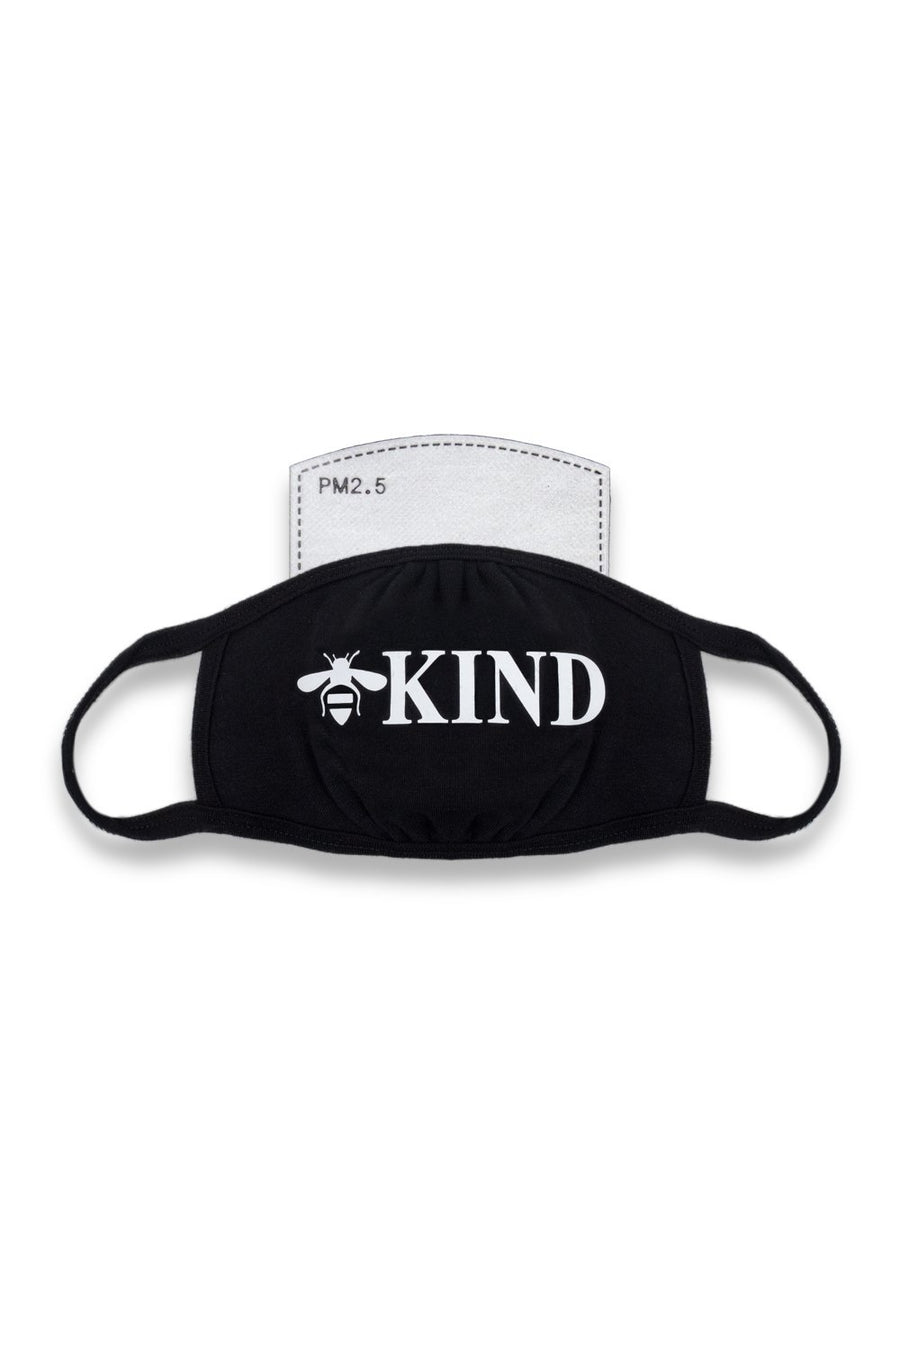 Be Kind Mask Black/White